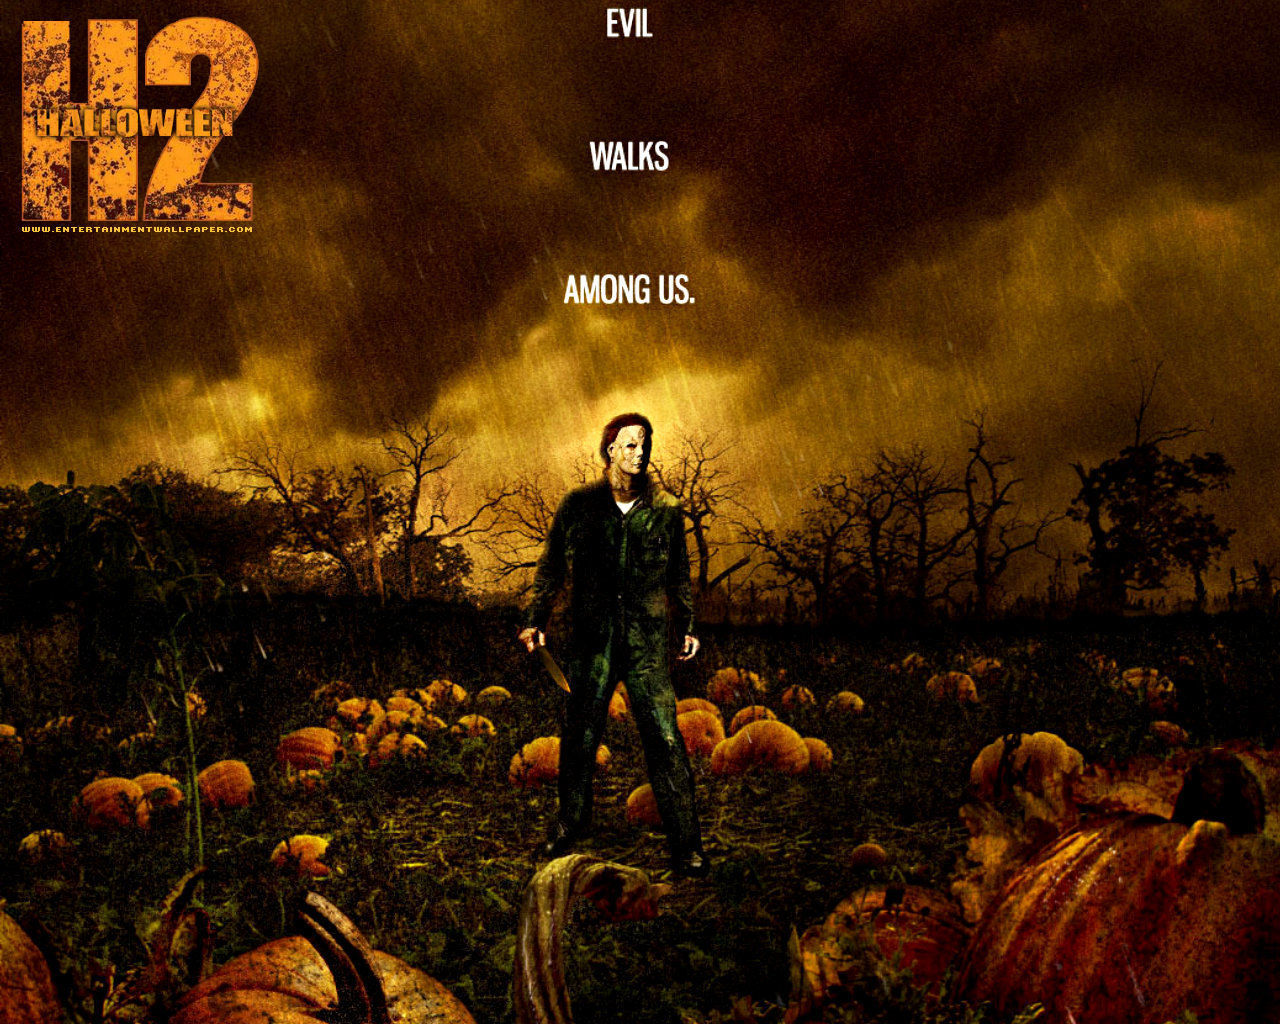 Halloween images Halloween HD wallpaper and background photos